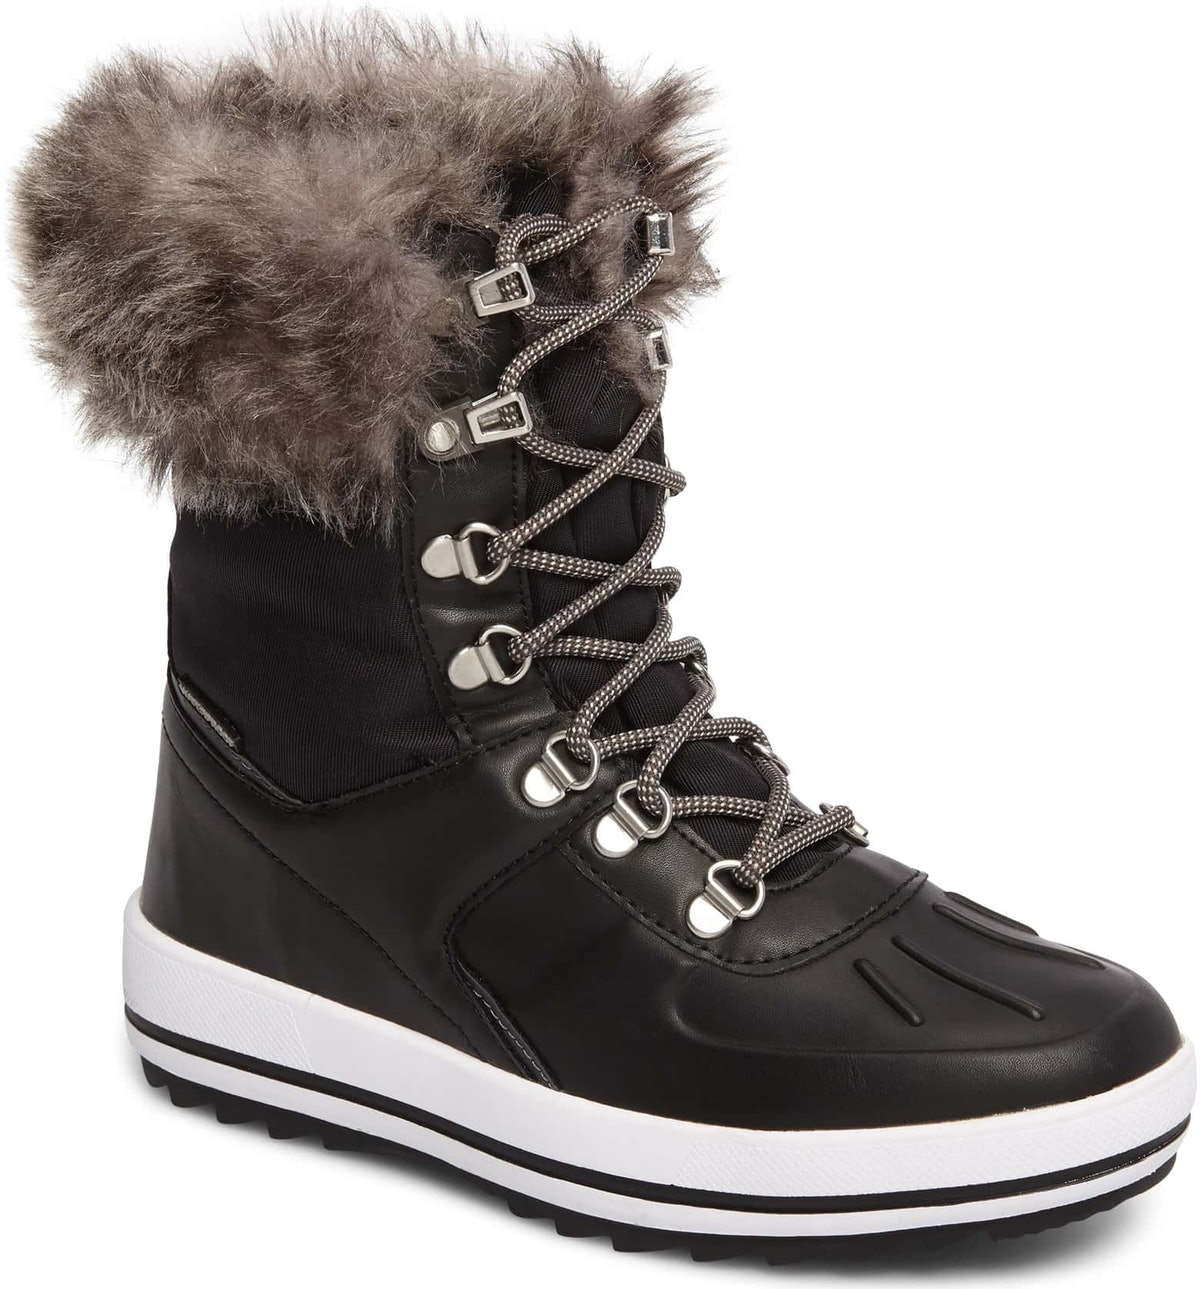 Viper Waterproof Snow Boot with Faux Fur Trim